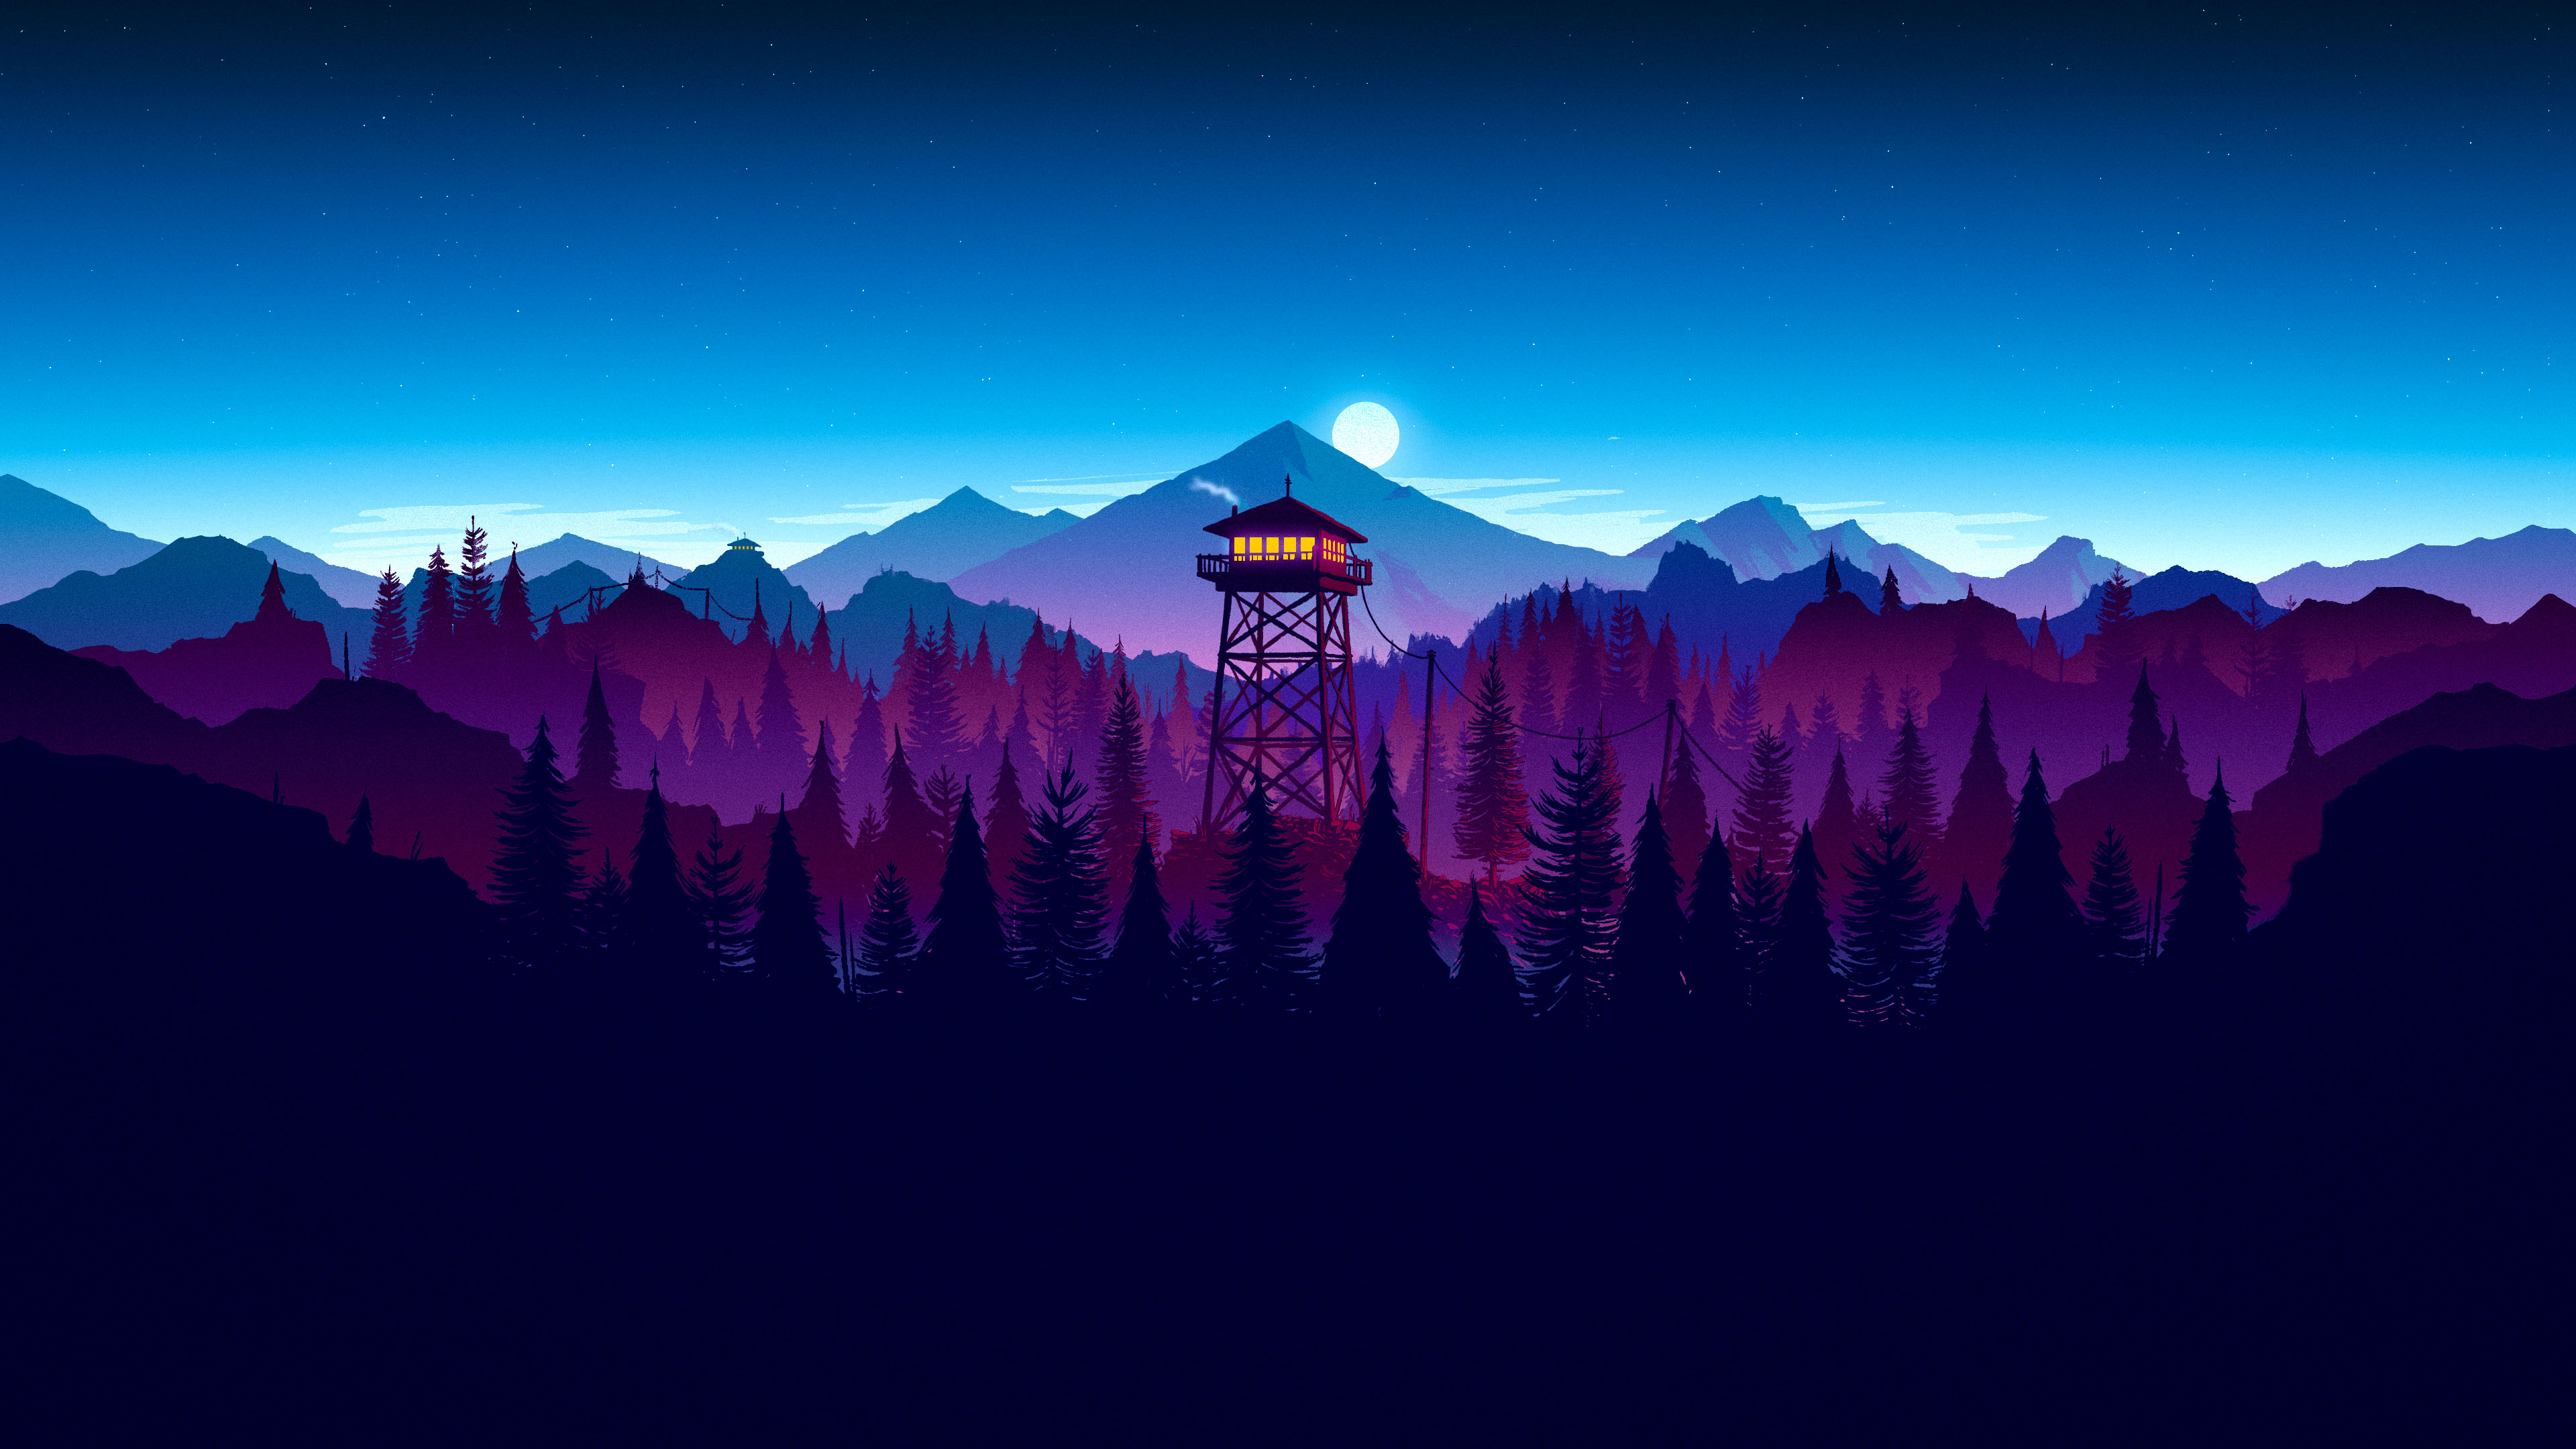 firewatch-night-wallpaper.jpg